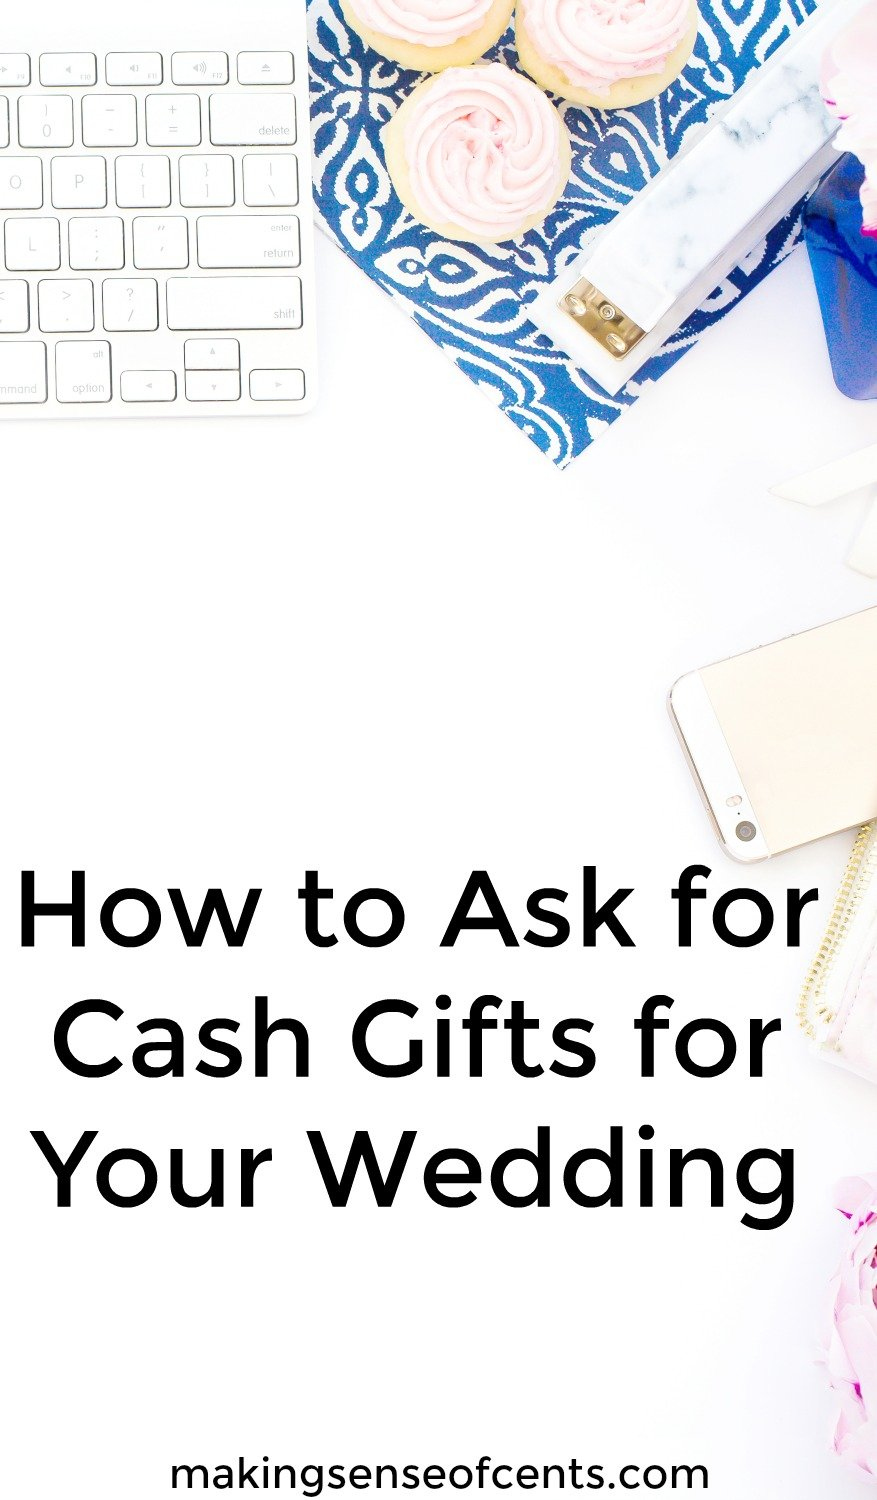 How to Ask for Cash Gifts for Your Wedding - Making Sense Of Cents